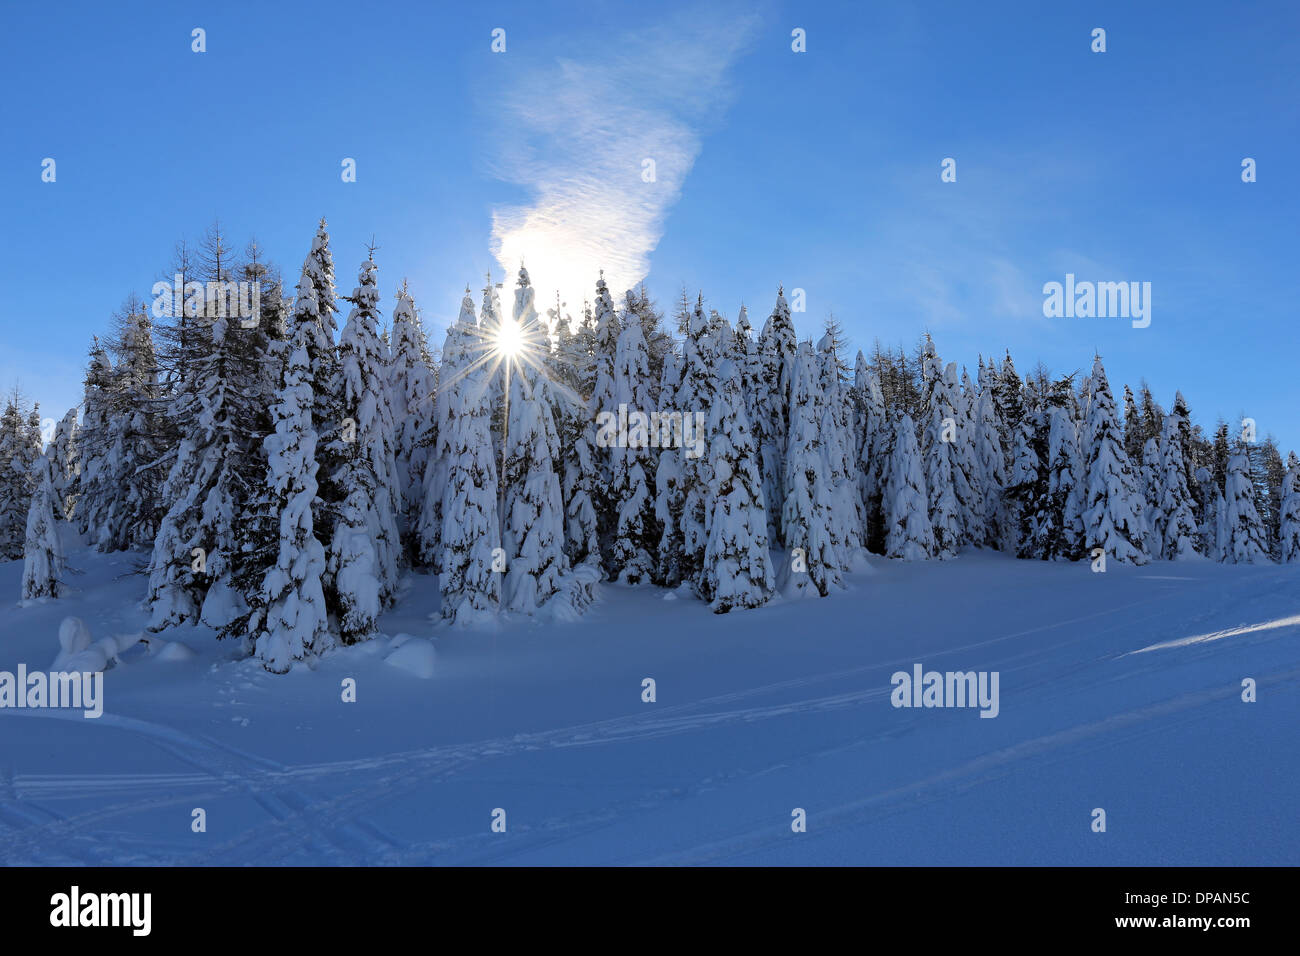 Conifer forest in winter. The Dolomites. - Stock Image